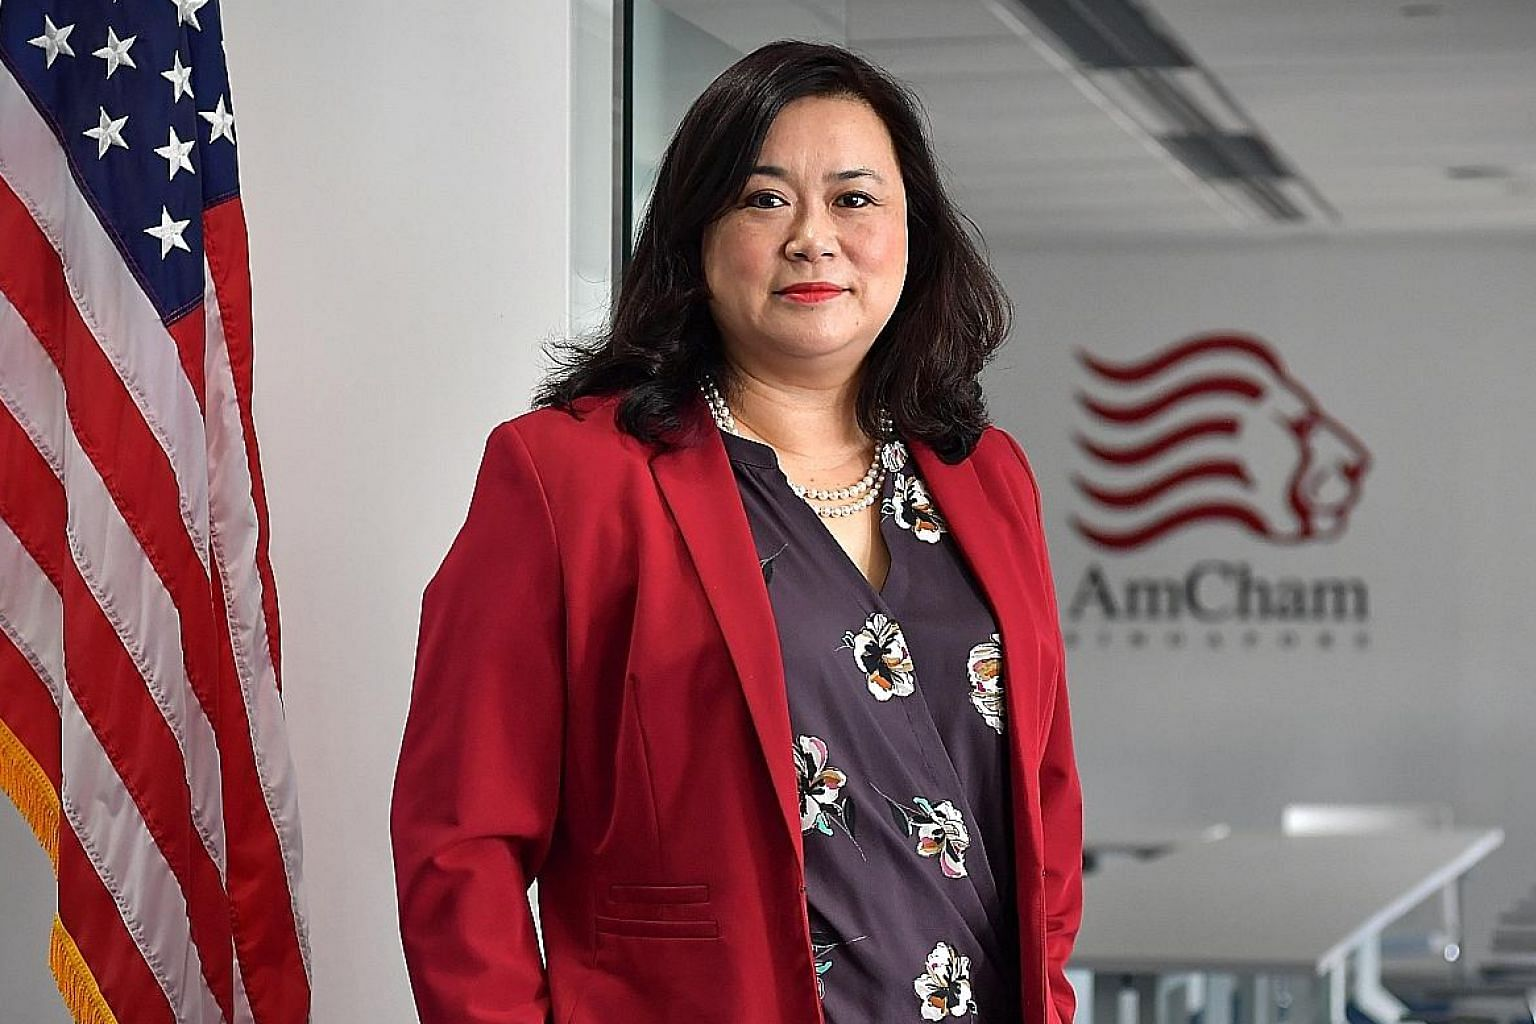 AmCham CEO Lei Hsien-Hsien said confidence in Singapore is strong and American firms remain committed to their operations here. The chamber intends to roll out an SME ACCelerate scheme in the third quarter of this year to train and develop small busi